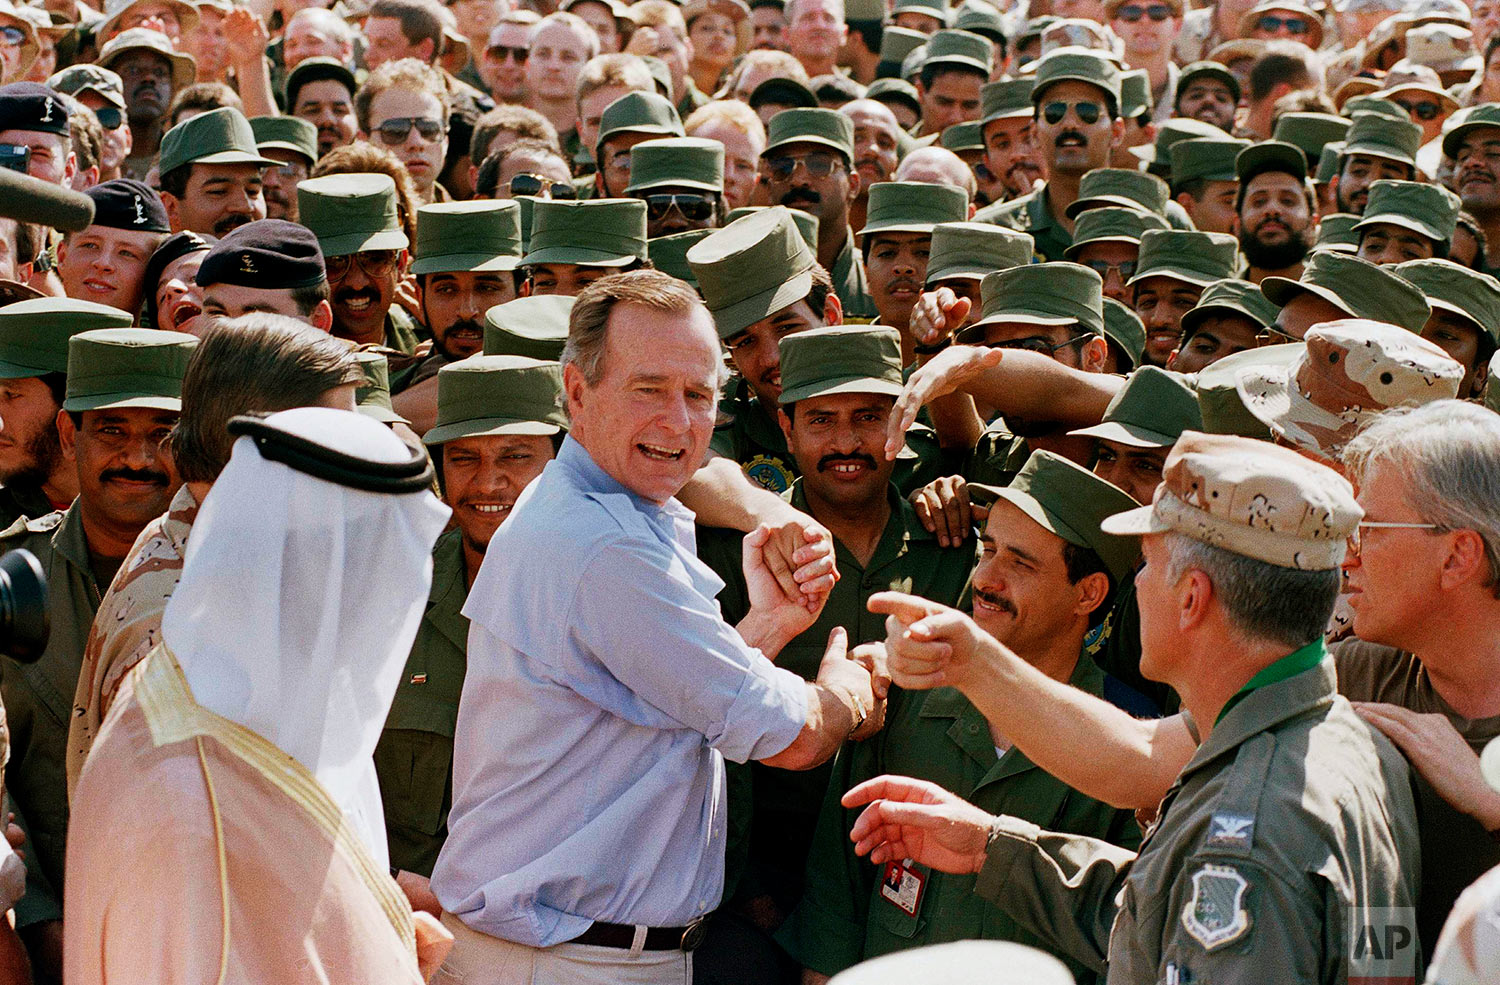 President George Bush is greeted by Saudi troops and others as he arrives in Dhahran, Saudi Arabia, for a Thanksgiving visit, Nov. 22, 1990. (AP Photo/J. Scott Applewhite)